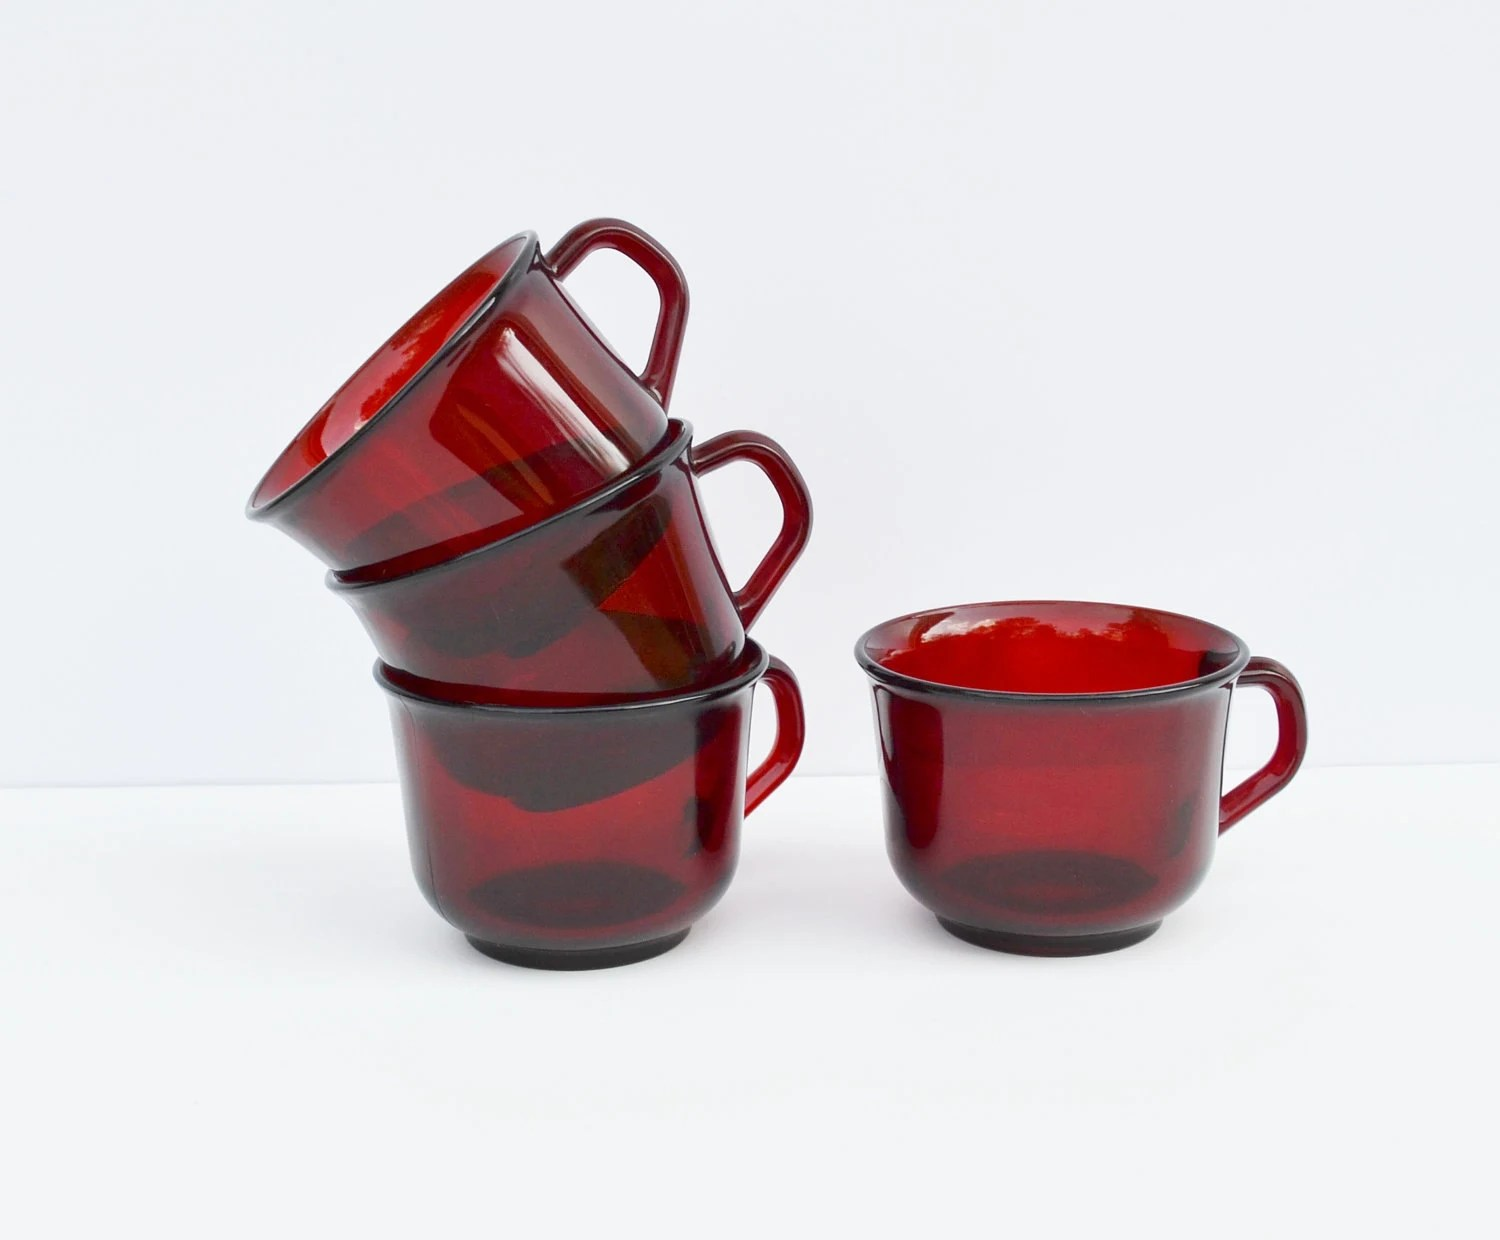 Vintage Red Glassware Ruby Red Arcoroc Of France Set Of 4 Tea